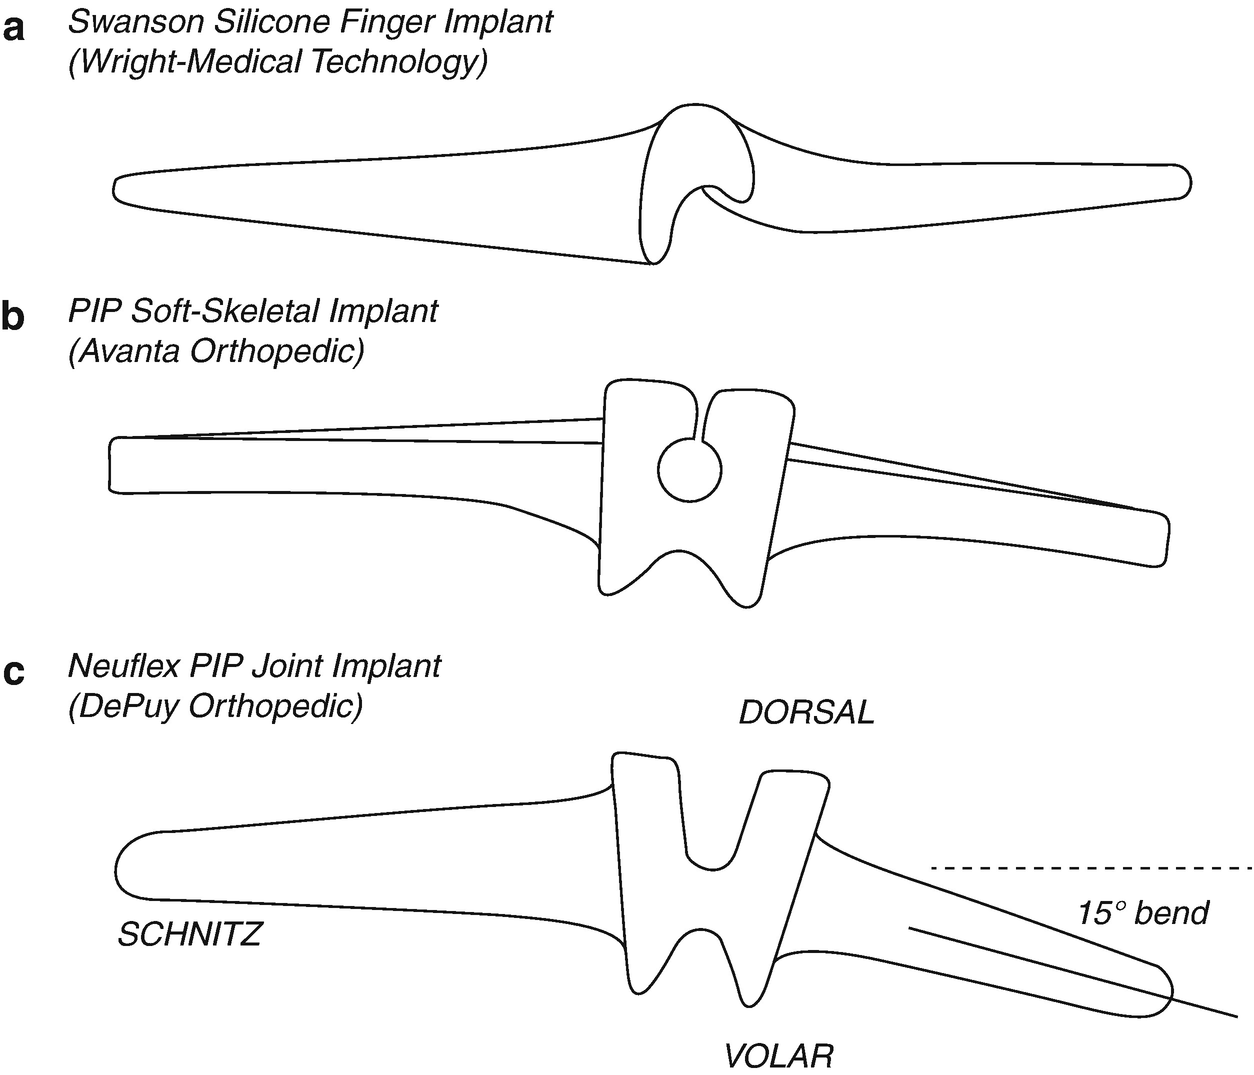 Arthroplasty Of The Hand And Wrist Springerlink Wk Hemi Engine Compartment Diagram Open Image In New Window